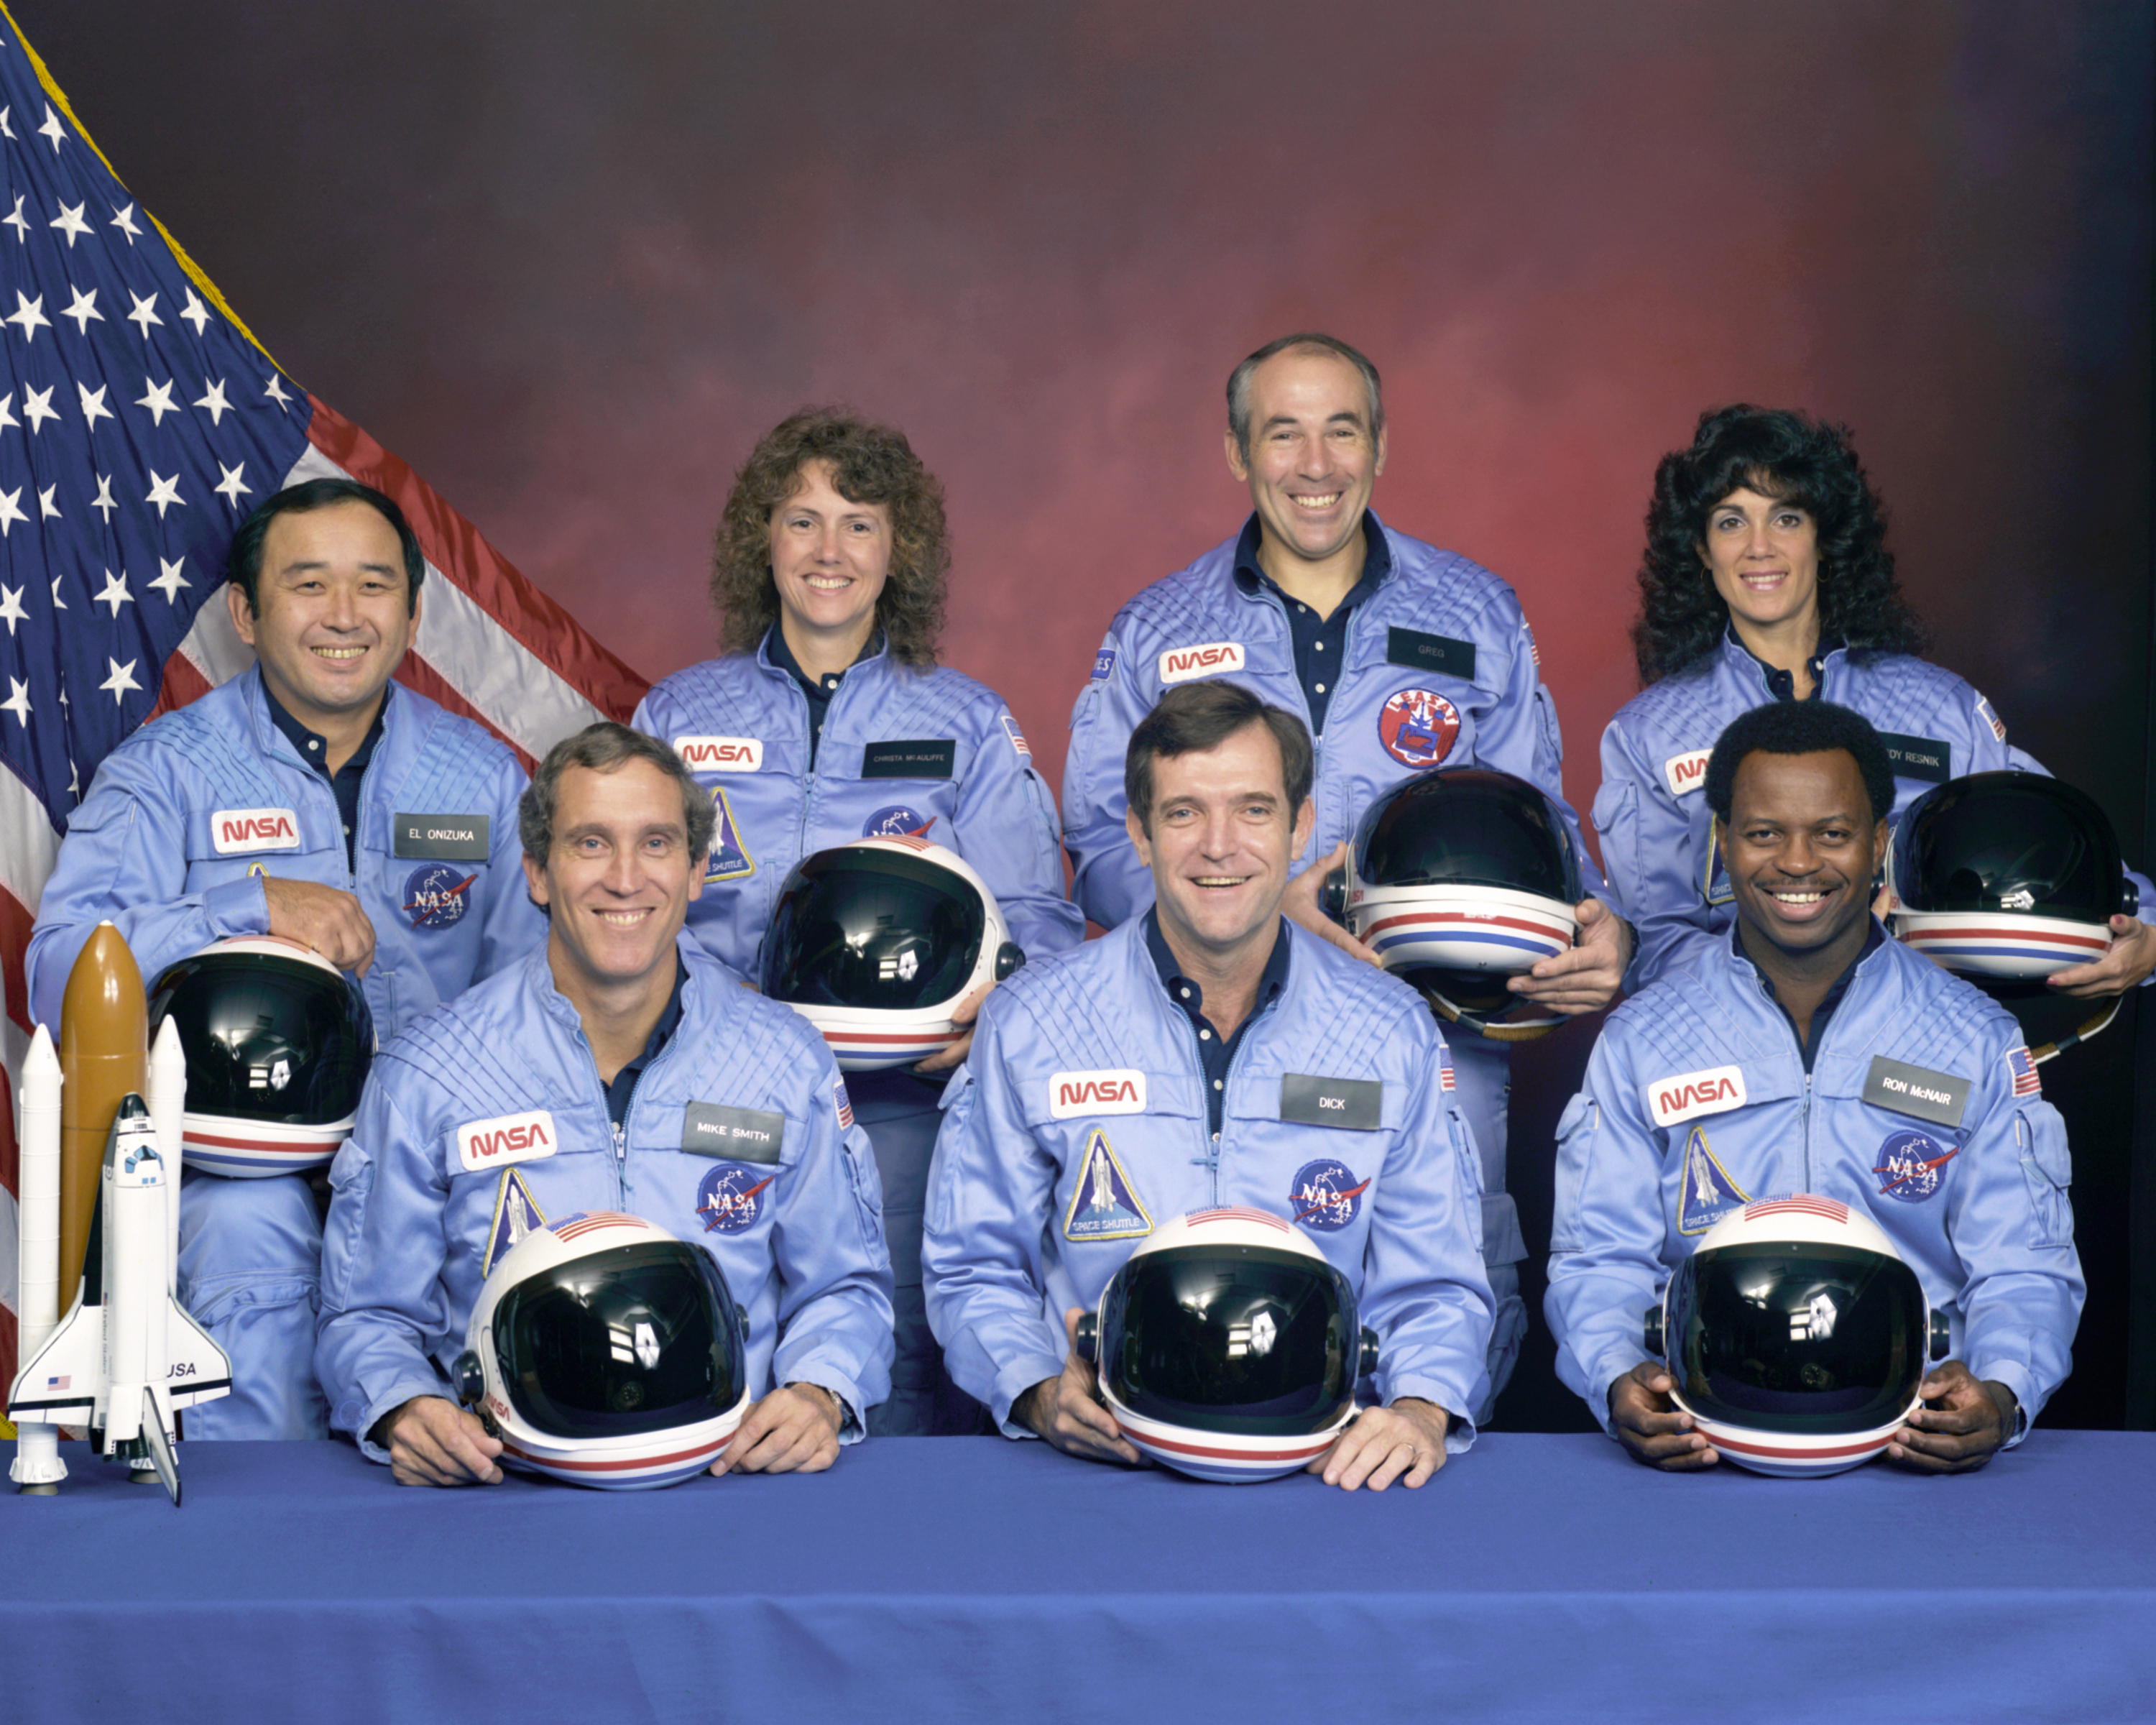 Ellison S. Onizuka, Sharon Christa McAuliffe, Gregory Jarvis, Judith A. ResnikMichael J. Smith, Francis R. (Dick) Scobee, Ronald E. McNair